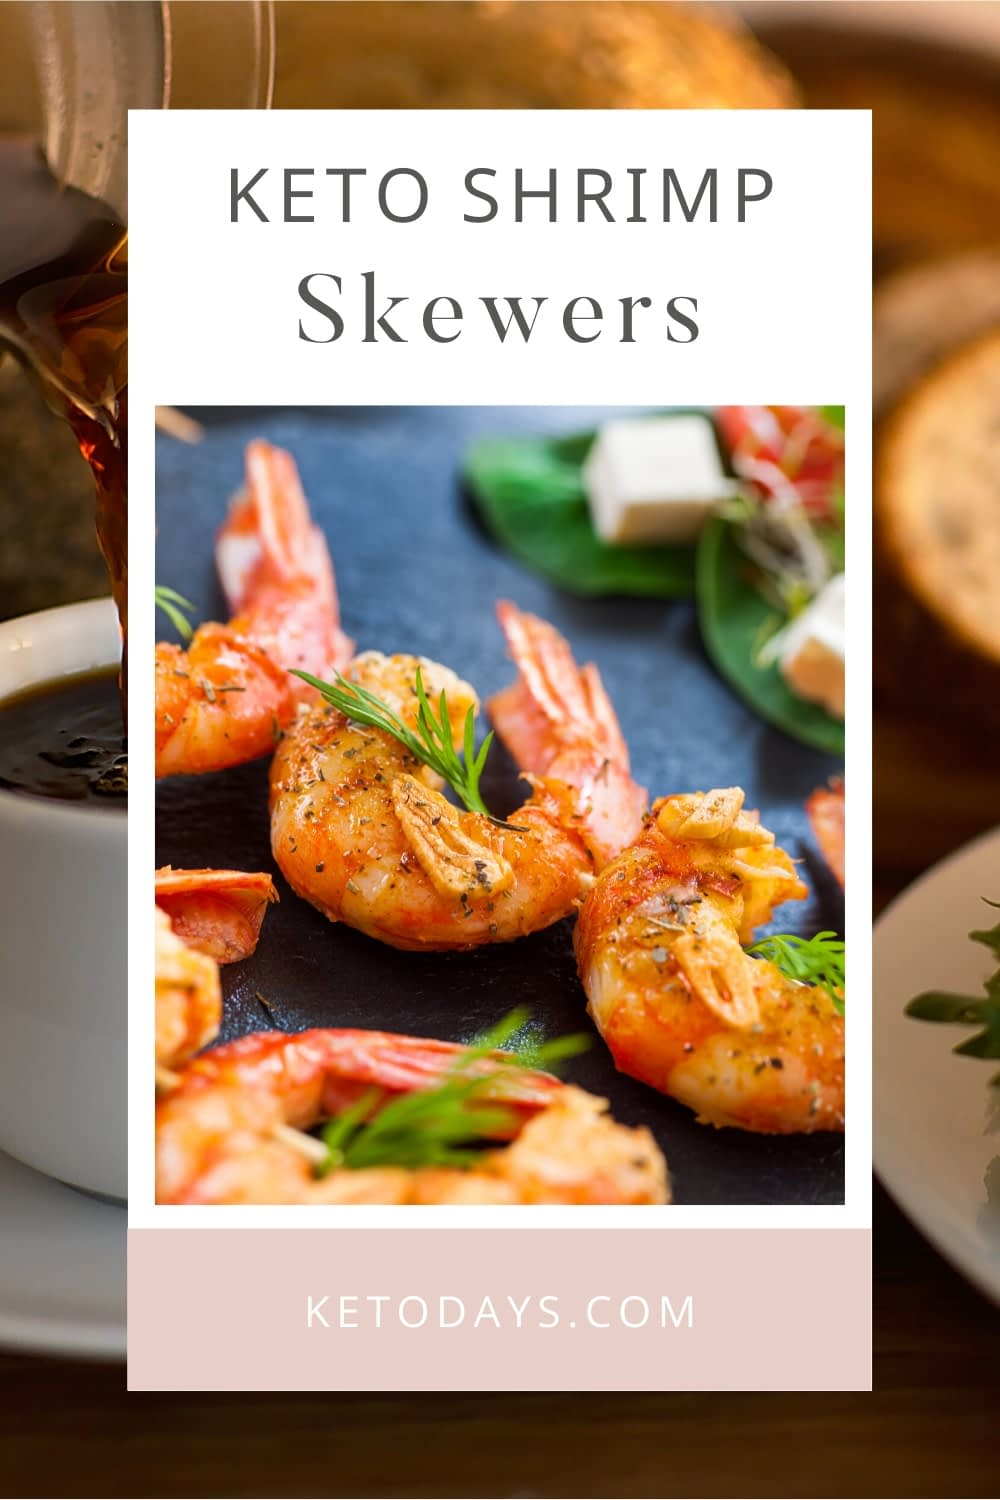 10g fat | 20g protein | 15g carbs | 5g fiber  Having a barbecue? Make these Spicy Mexican shrimp skewers to provide a Keto friendly option full of flavor.